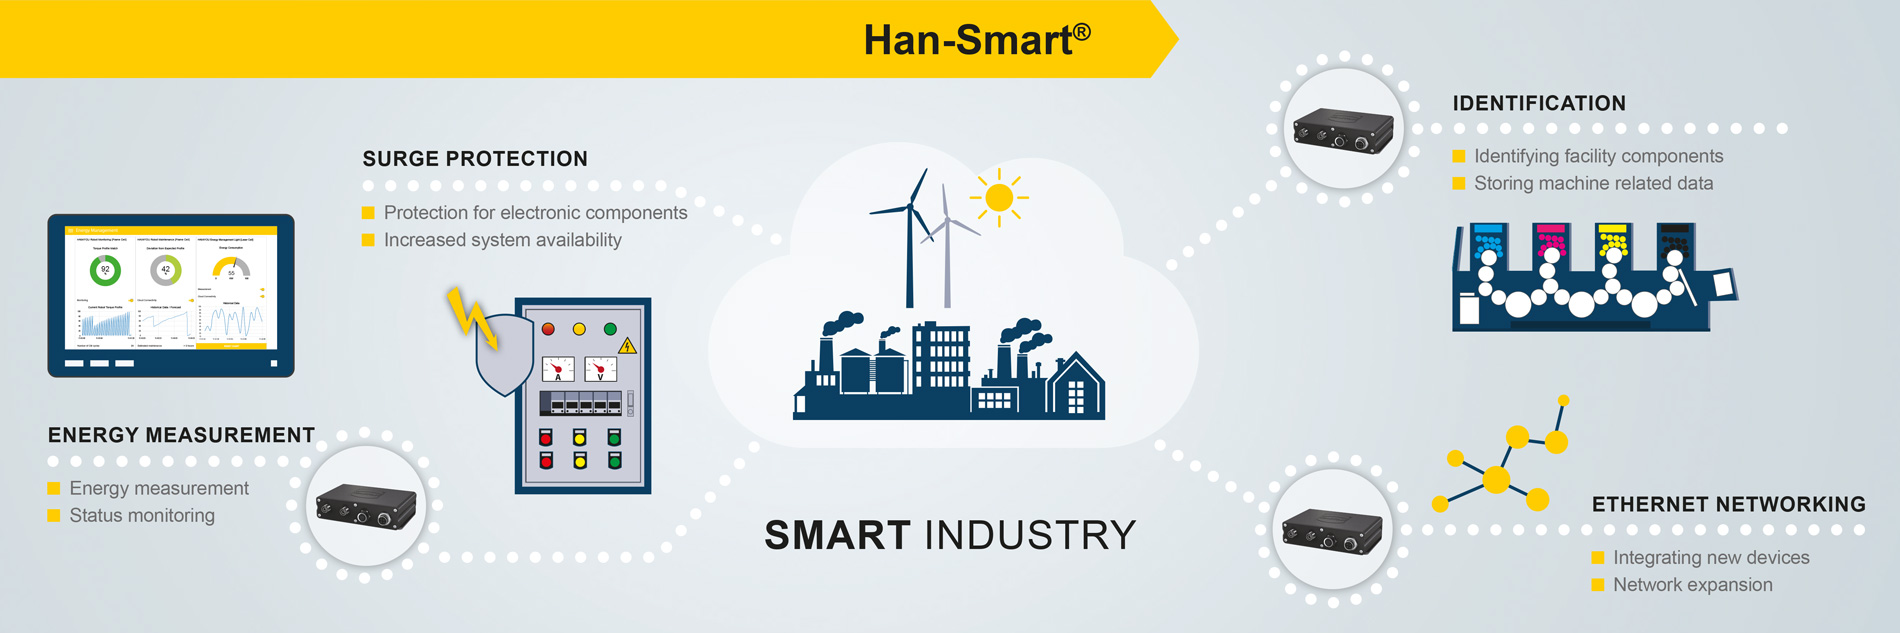 Han Smart Intelligence In The Connector Harting Technology Group Smallest Welding Machine Diagram Infografic